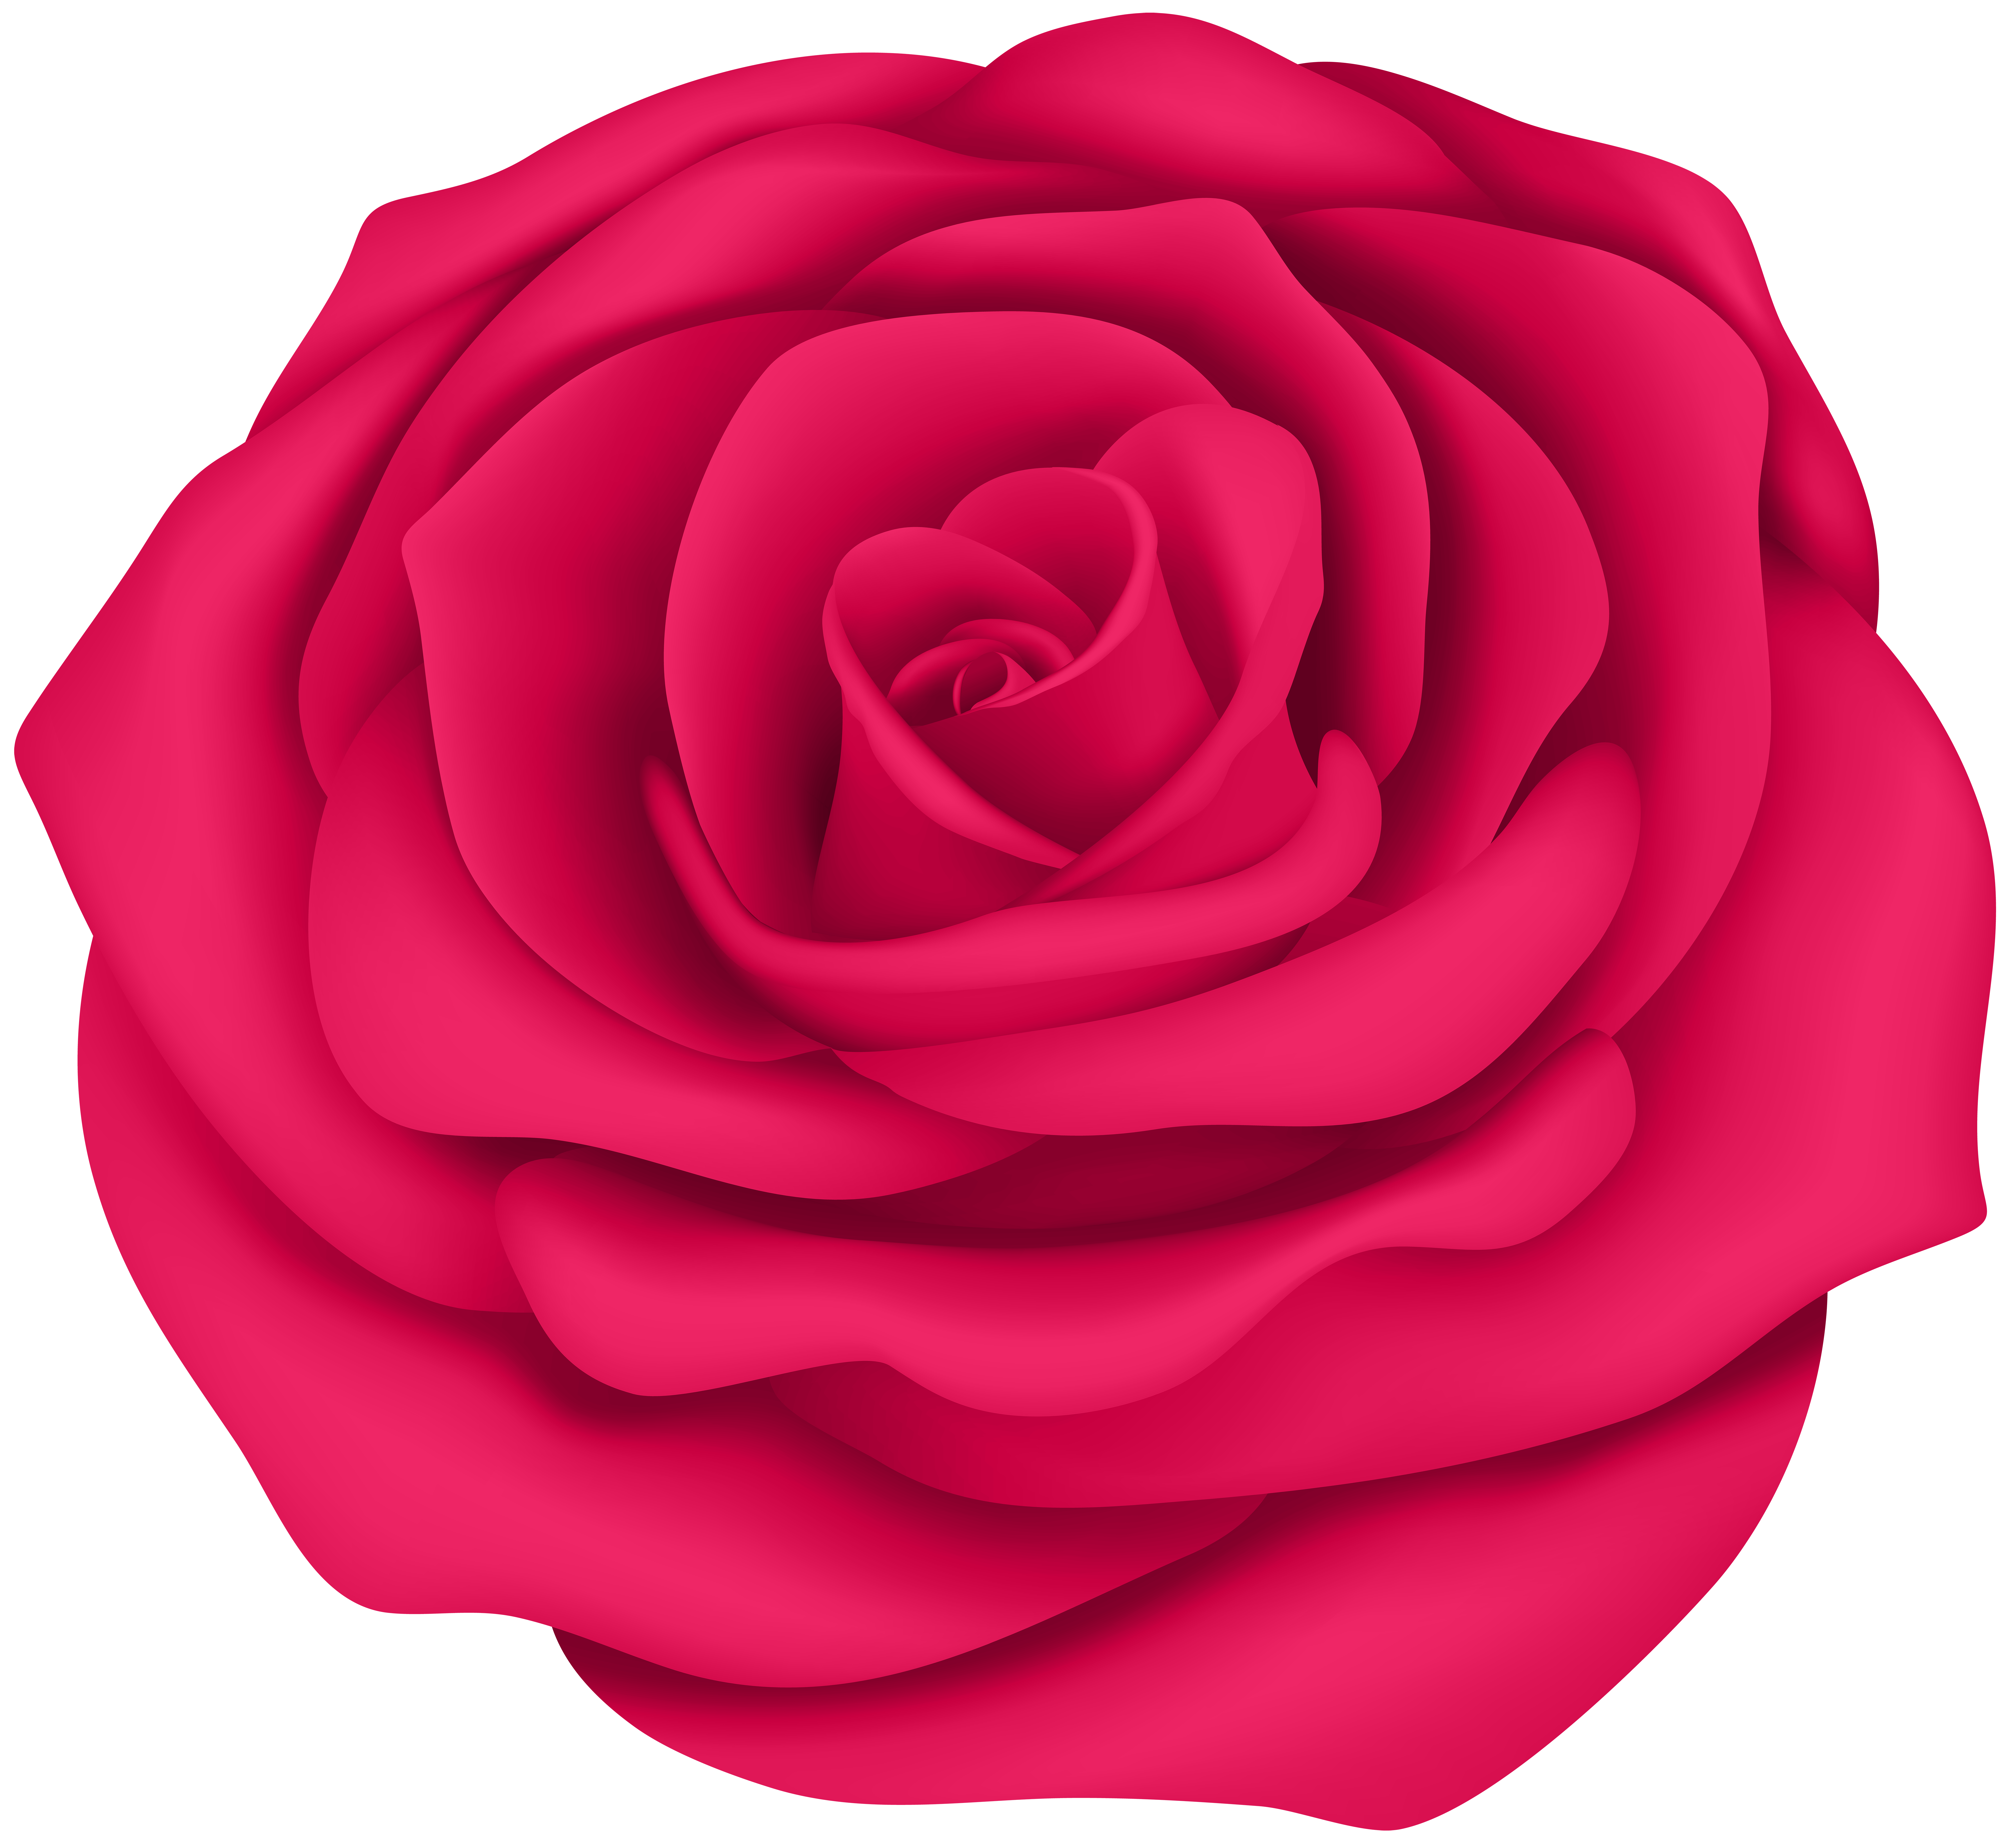 Rose Flower Clipart At Getdrawings Free For Personal Use Rose